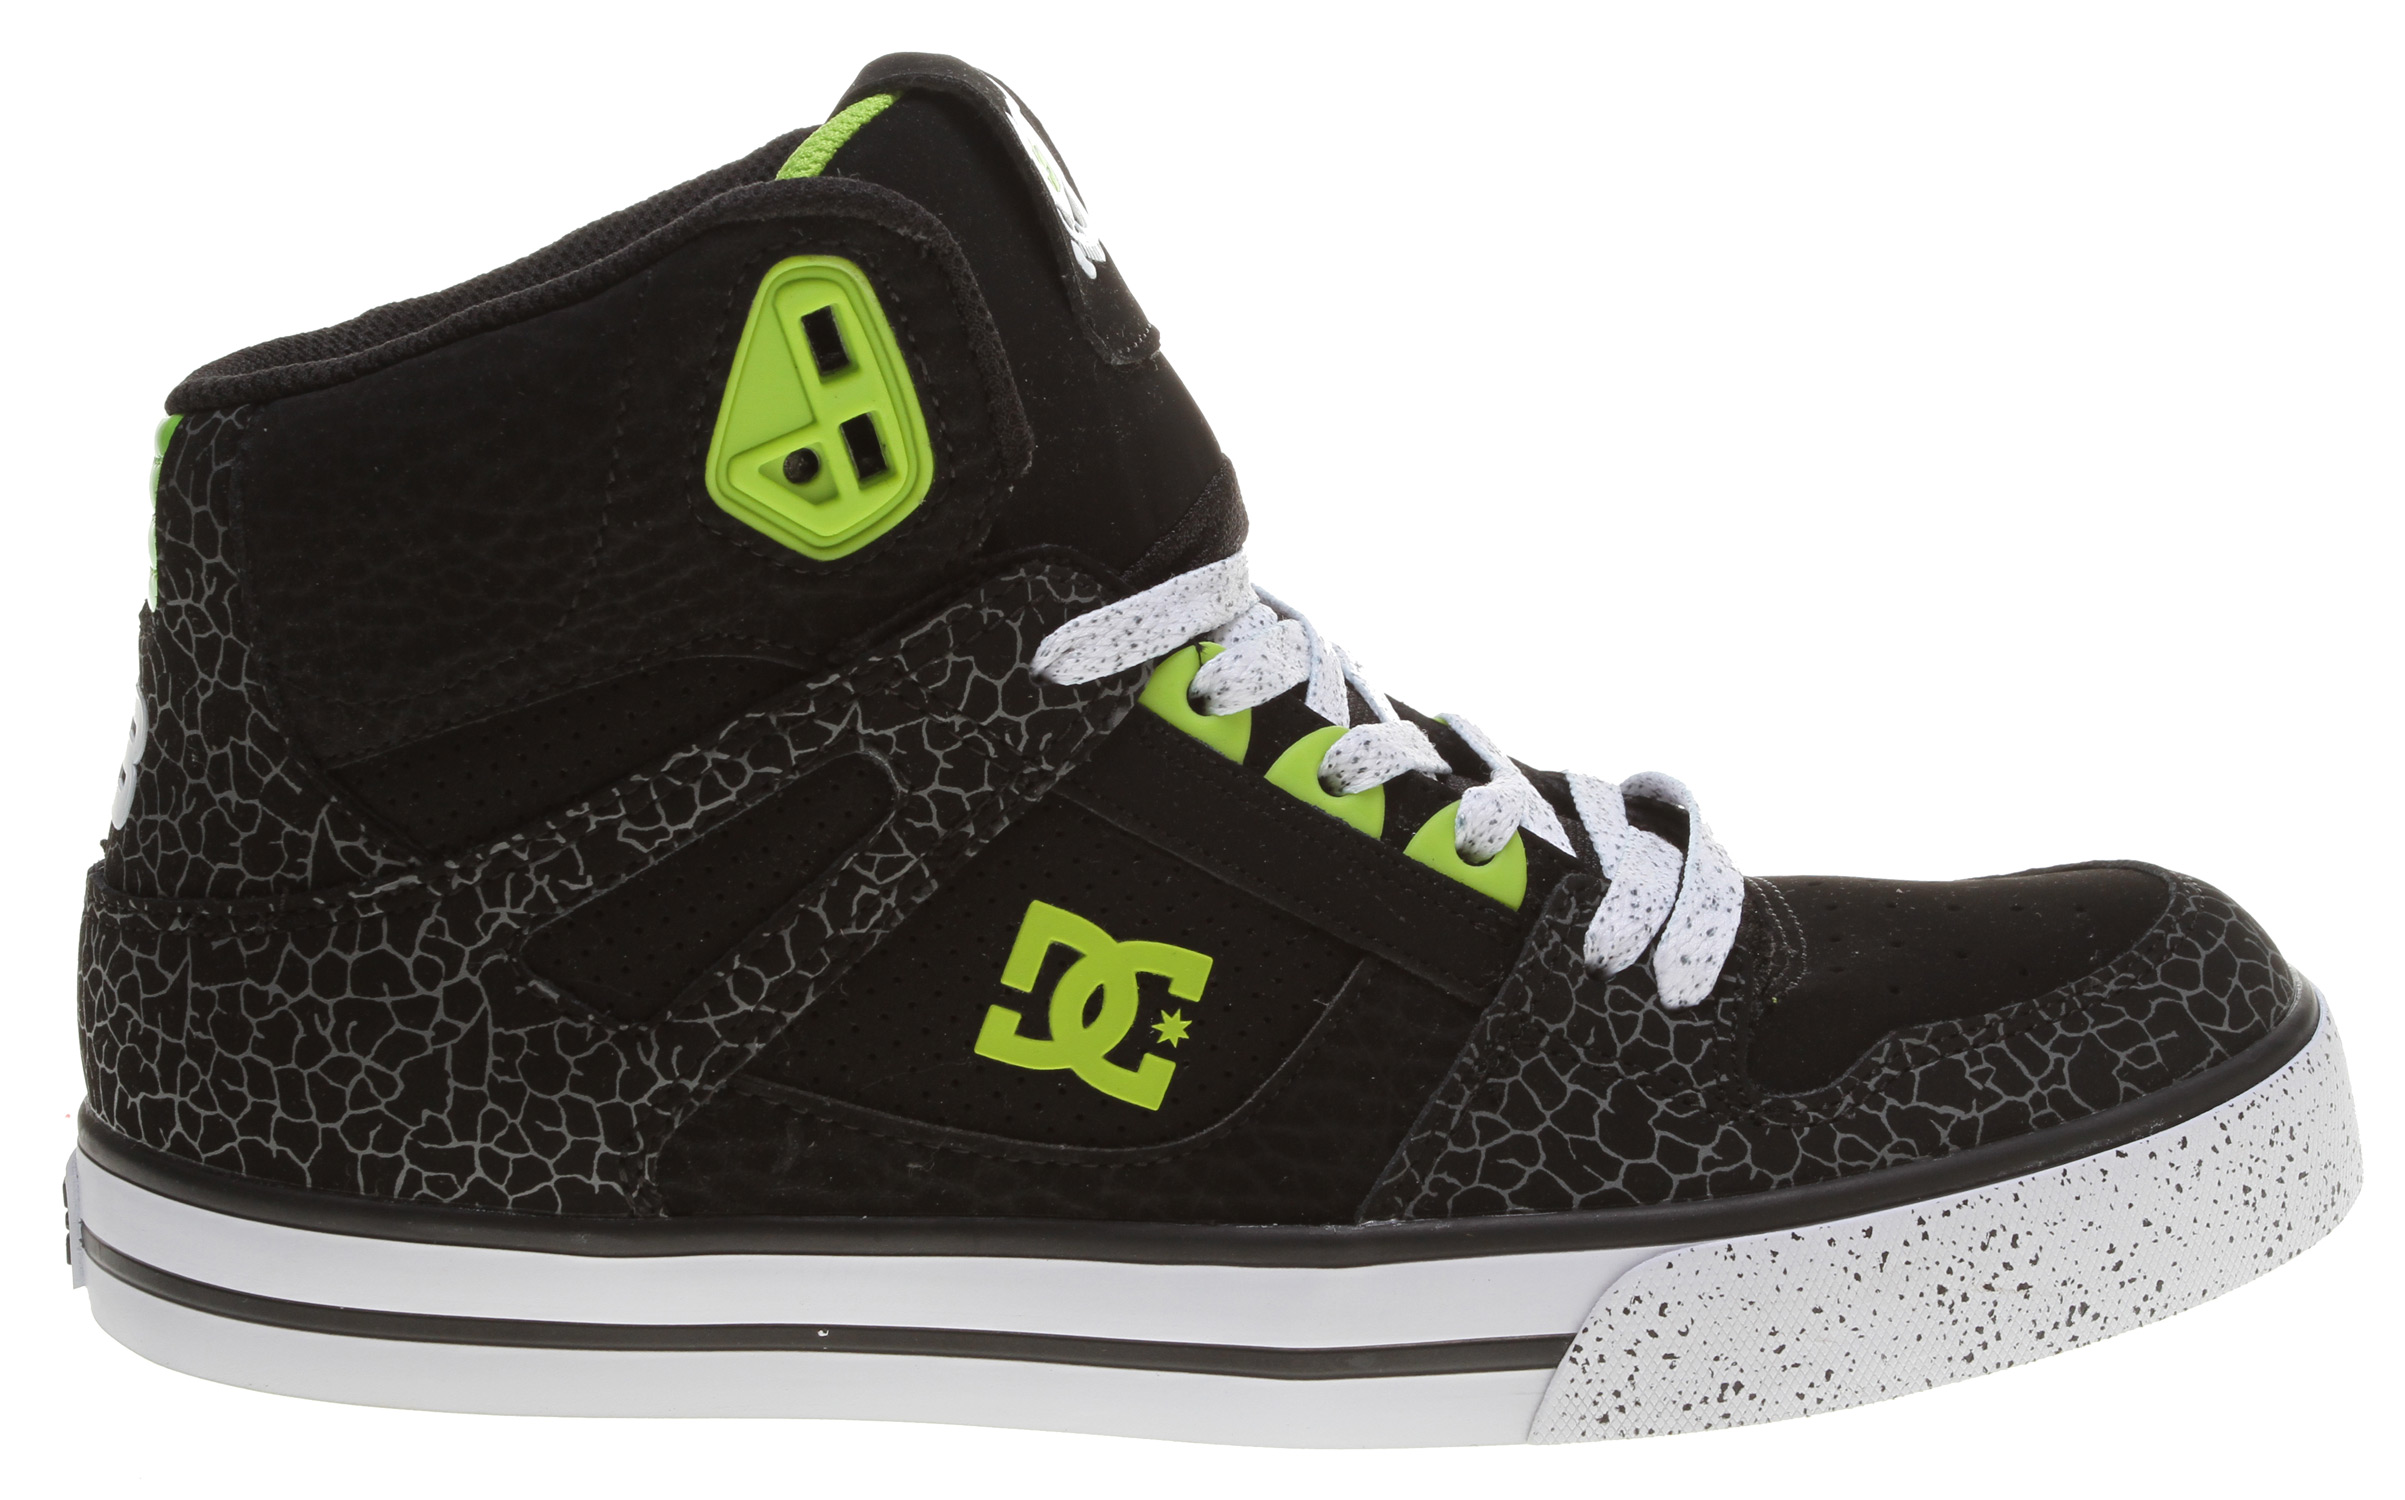 "Skateboard Skate like the pros in the DC Shoes Spartan HI skate shoes from the Ken Block Collection.Key Features of the DC Ken Block Spartan HI Skate Shoes: Leather, nubuck and/or suede upper in a technical hi top skate shoe style Features speckled paint print detail, logo detail on tongue Vent holes for breathability Padded collar and tongue Breathable textile lining and cushioned insole Gum rubber outsole with trademark DC ""Pill"" pattern - $69.95"